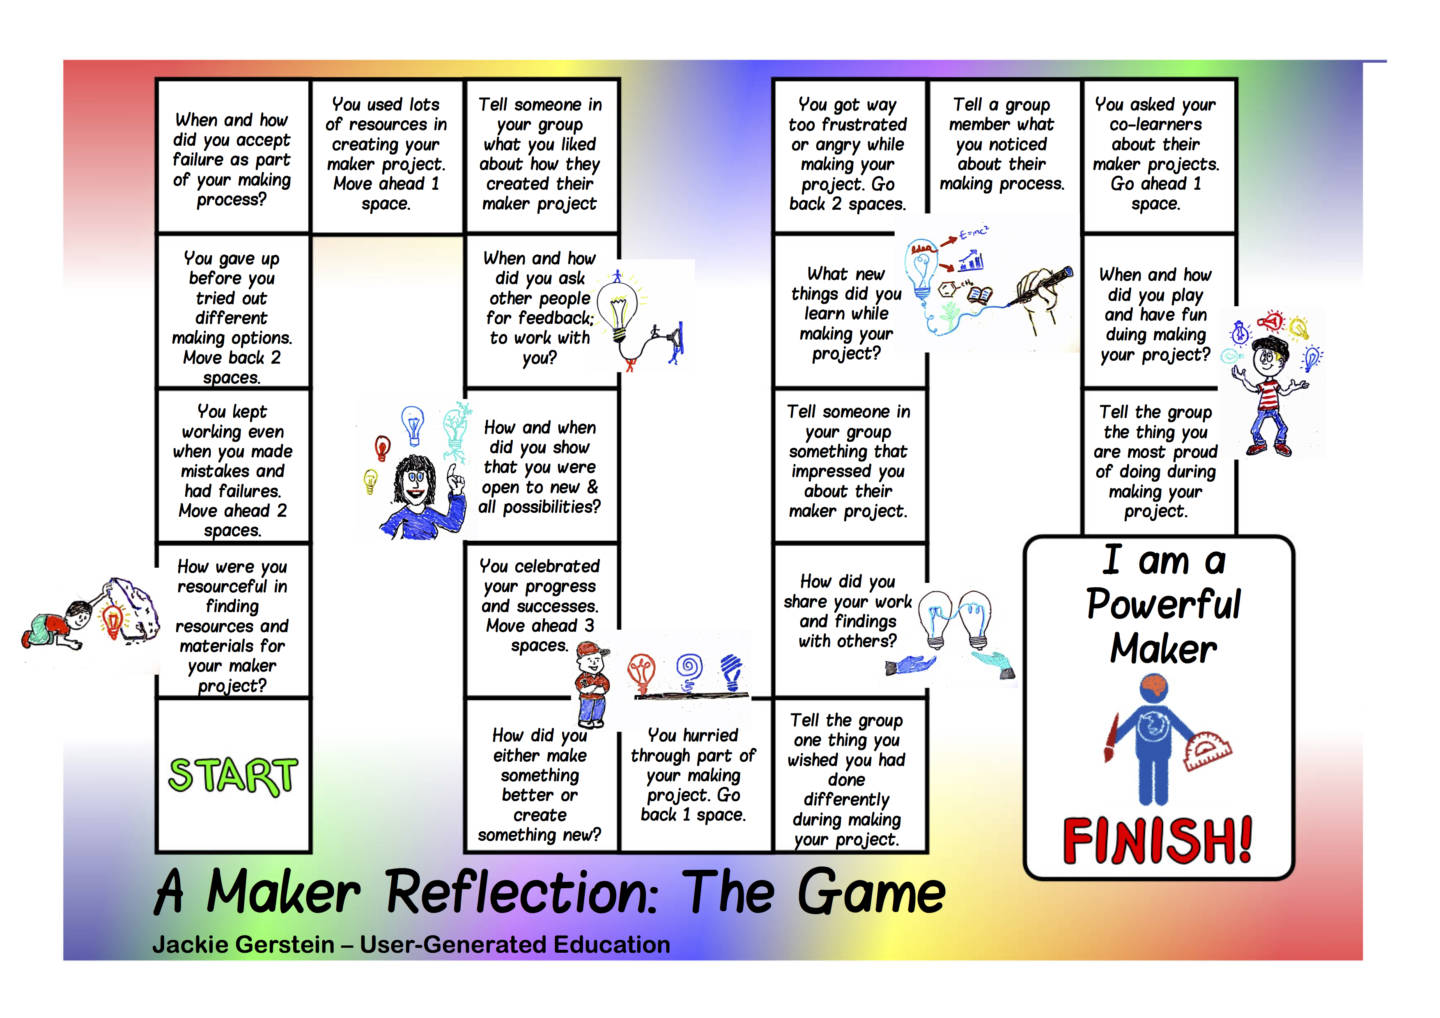 A reflection board game designed to solidify learning after a maker activity.